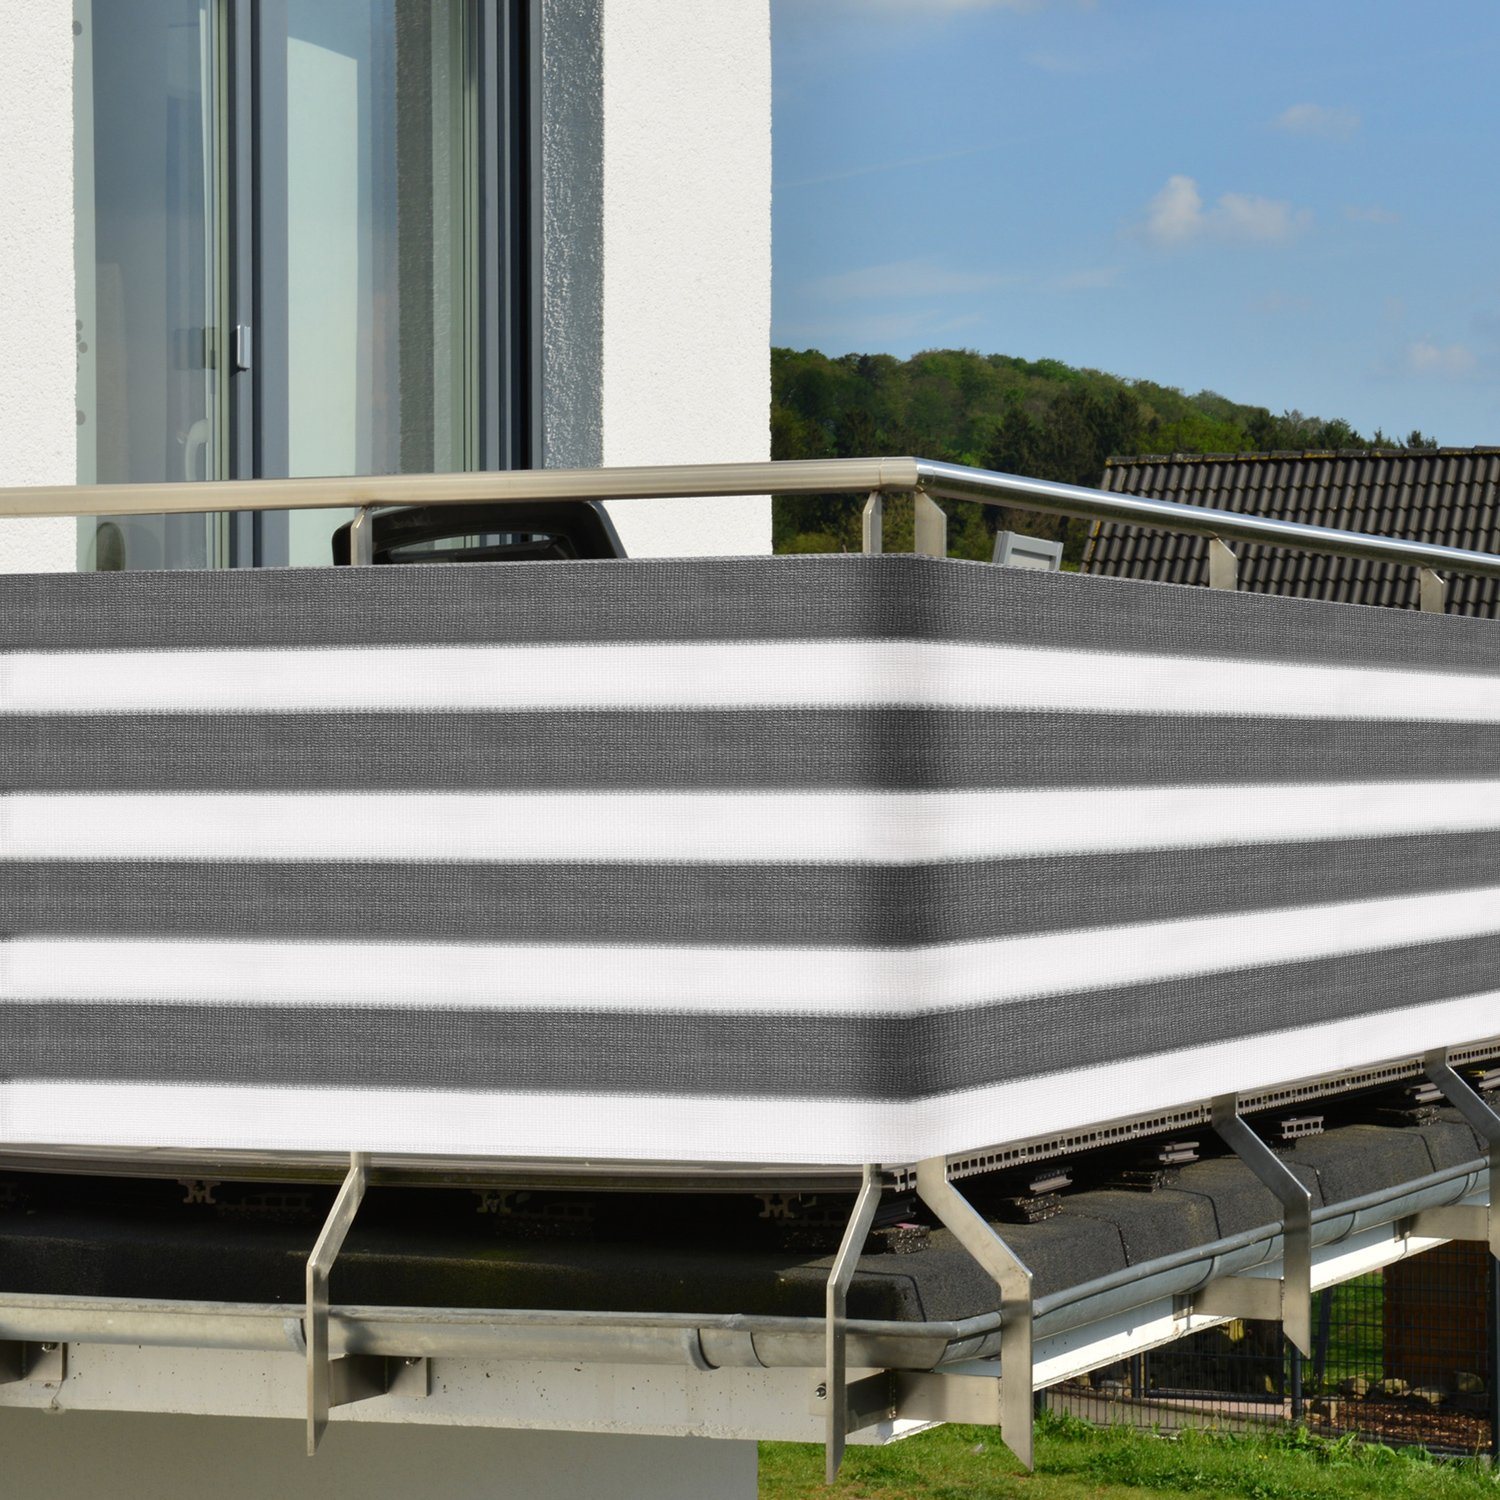 Sol Royal Balcony Screening SolVision Privacy Screen 5 m x 0.9 m UV Protection Sun Cover Windbreak - Grey-White